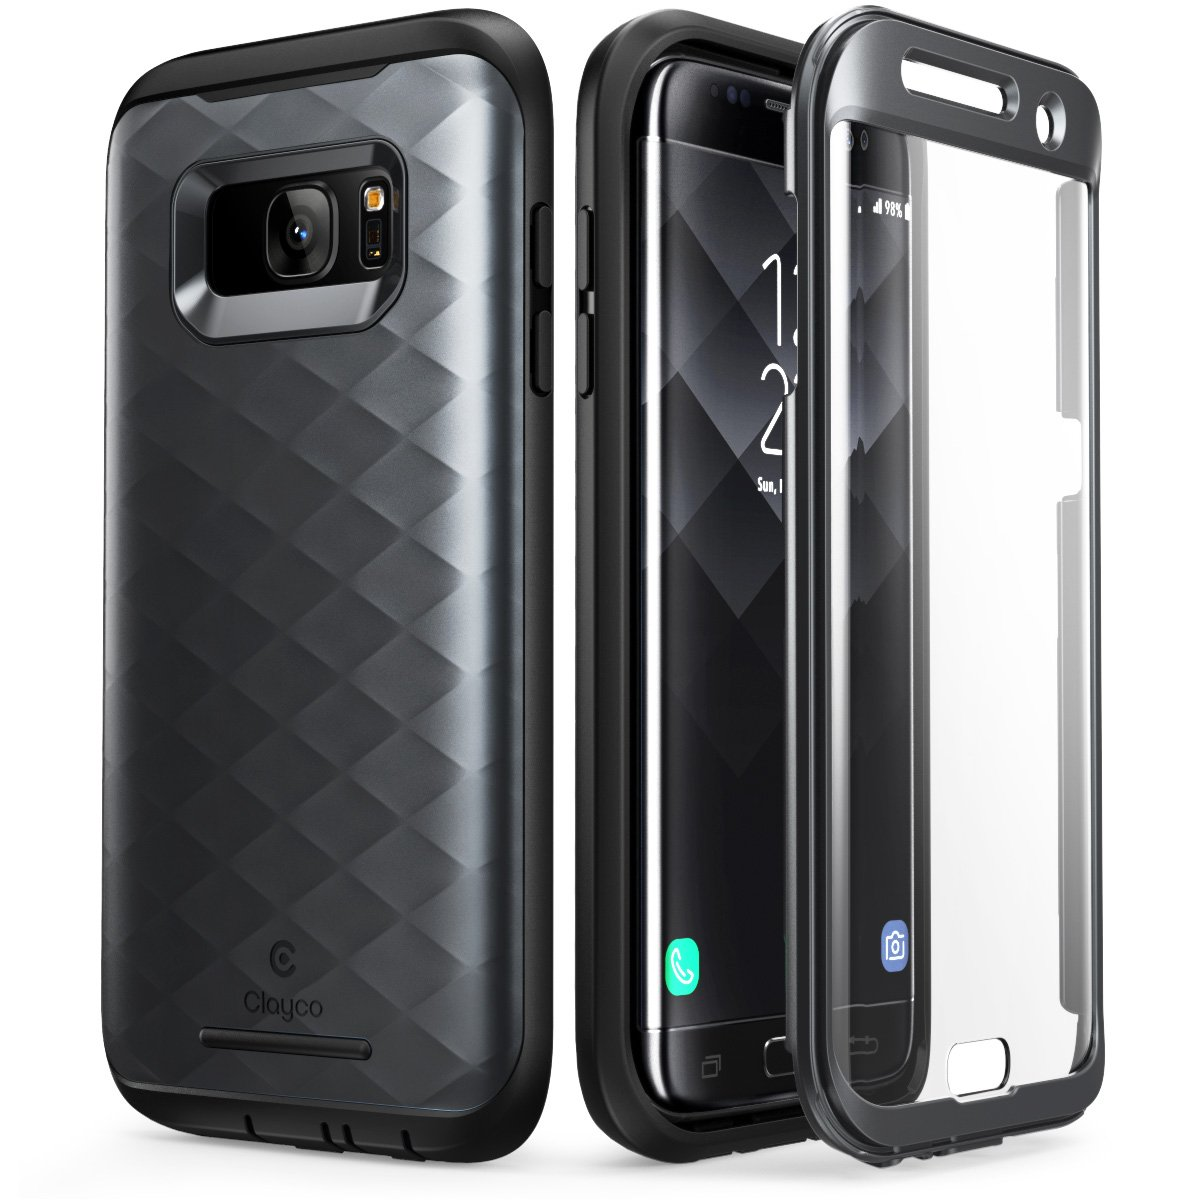 samsung galaxy s7 edge cases amazon co ukgalaxy s7 edge case, clayco [hera series] full body rugged case with